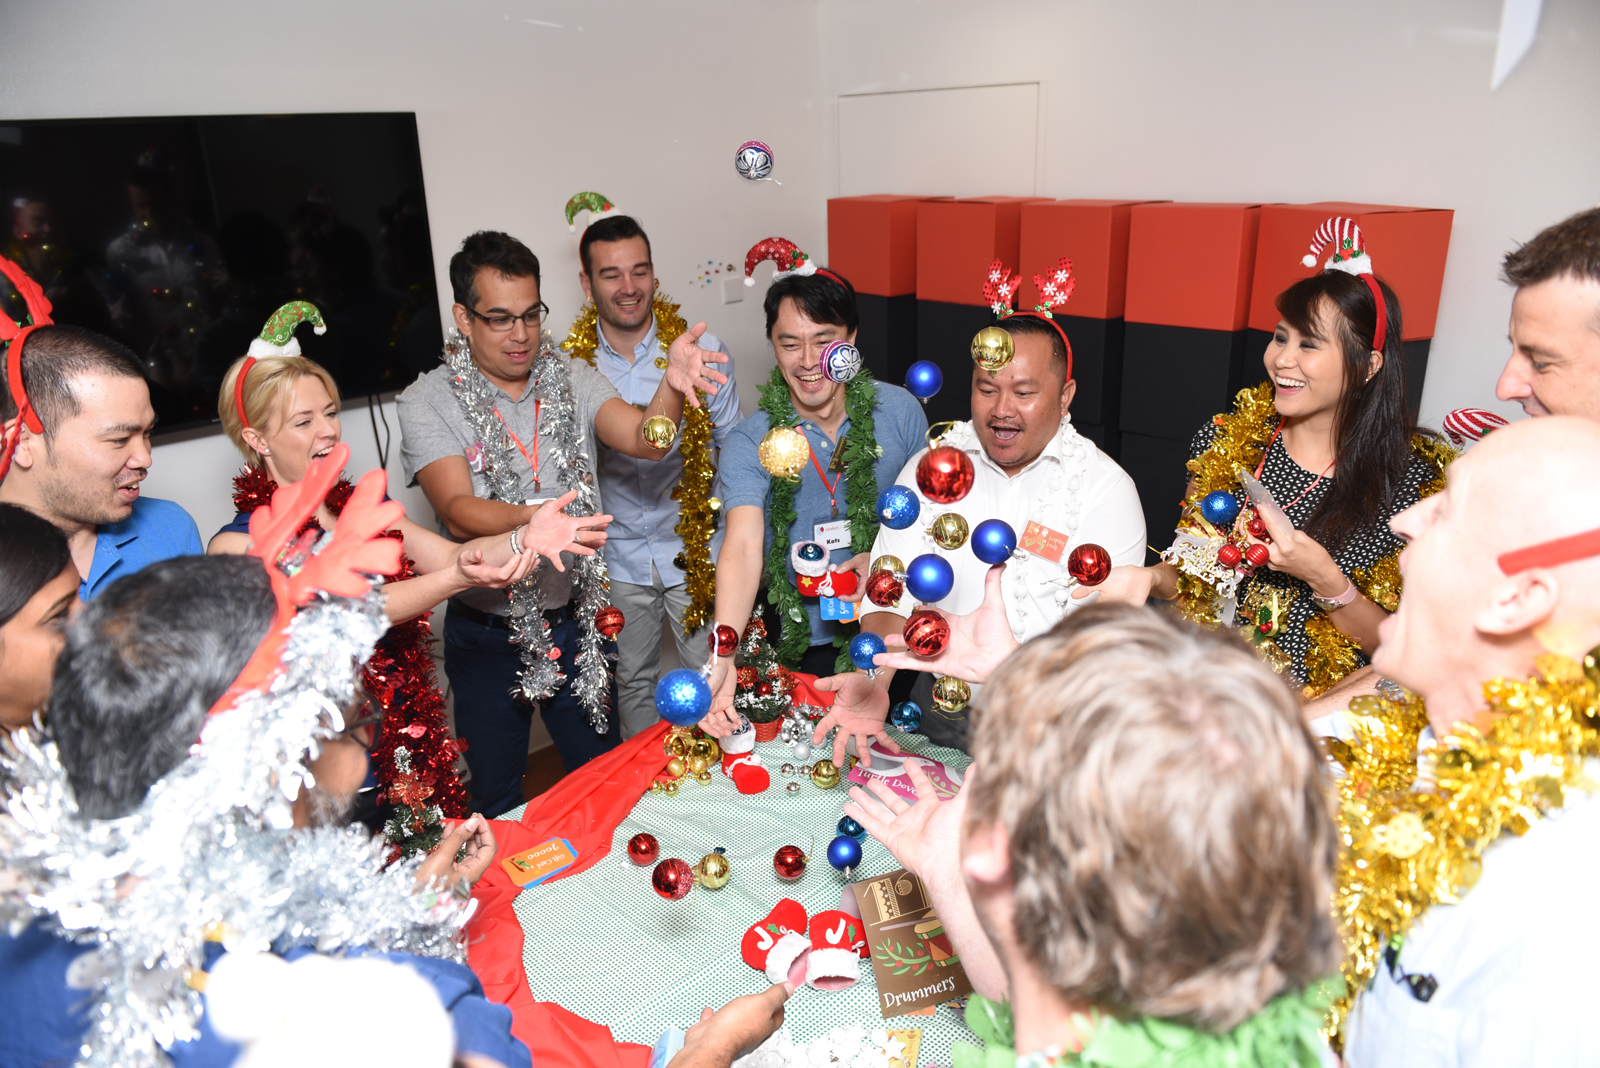 Why Christmas Parties Are Essential for Employee Engagement